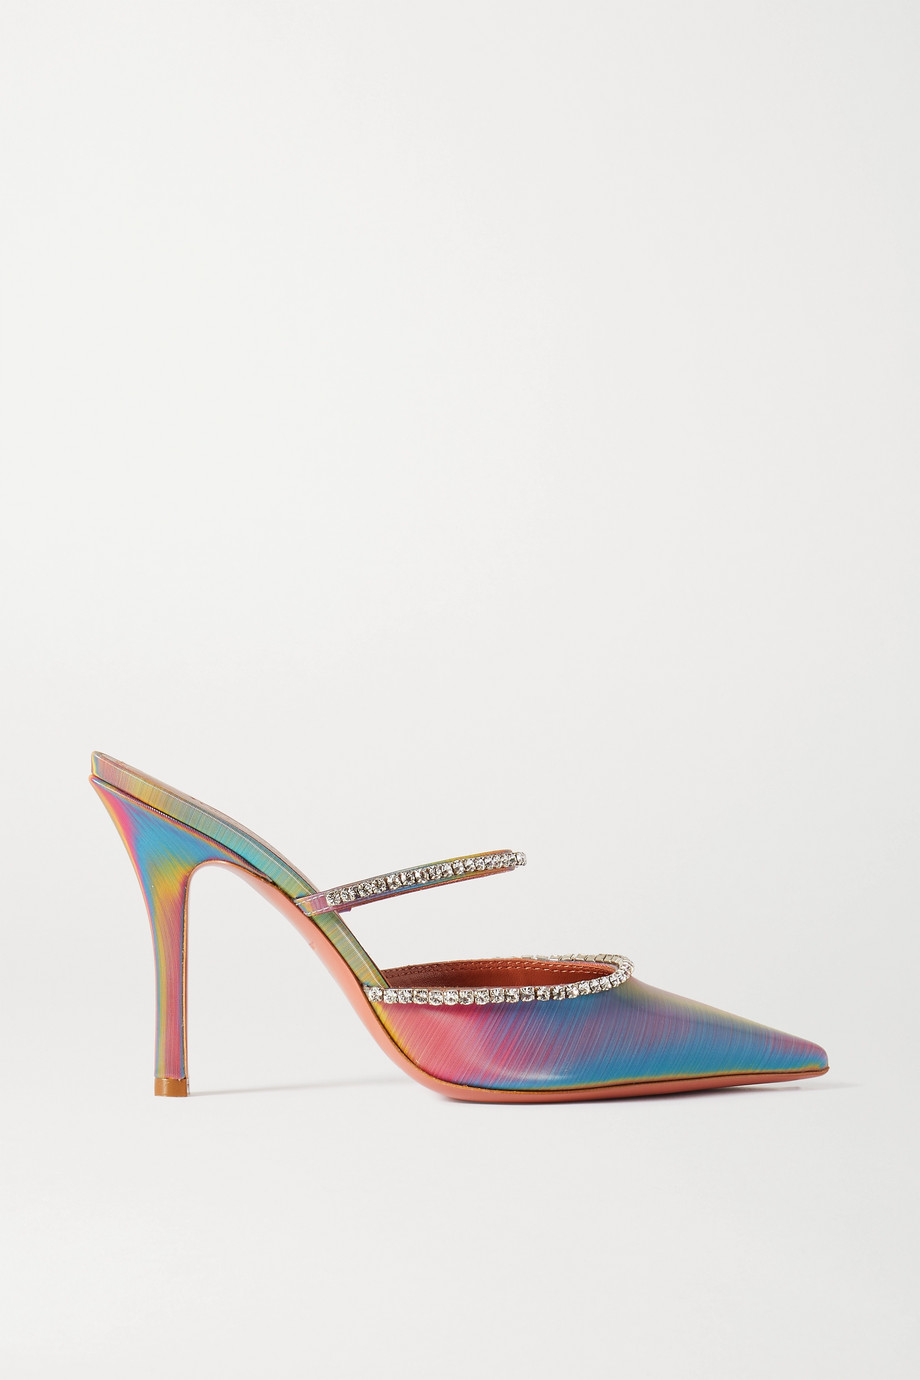 AMINA MUADDI Gilda crystal-embellished iridescent leather mules